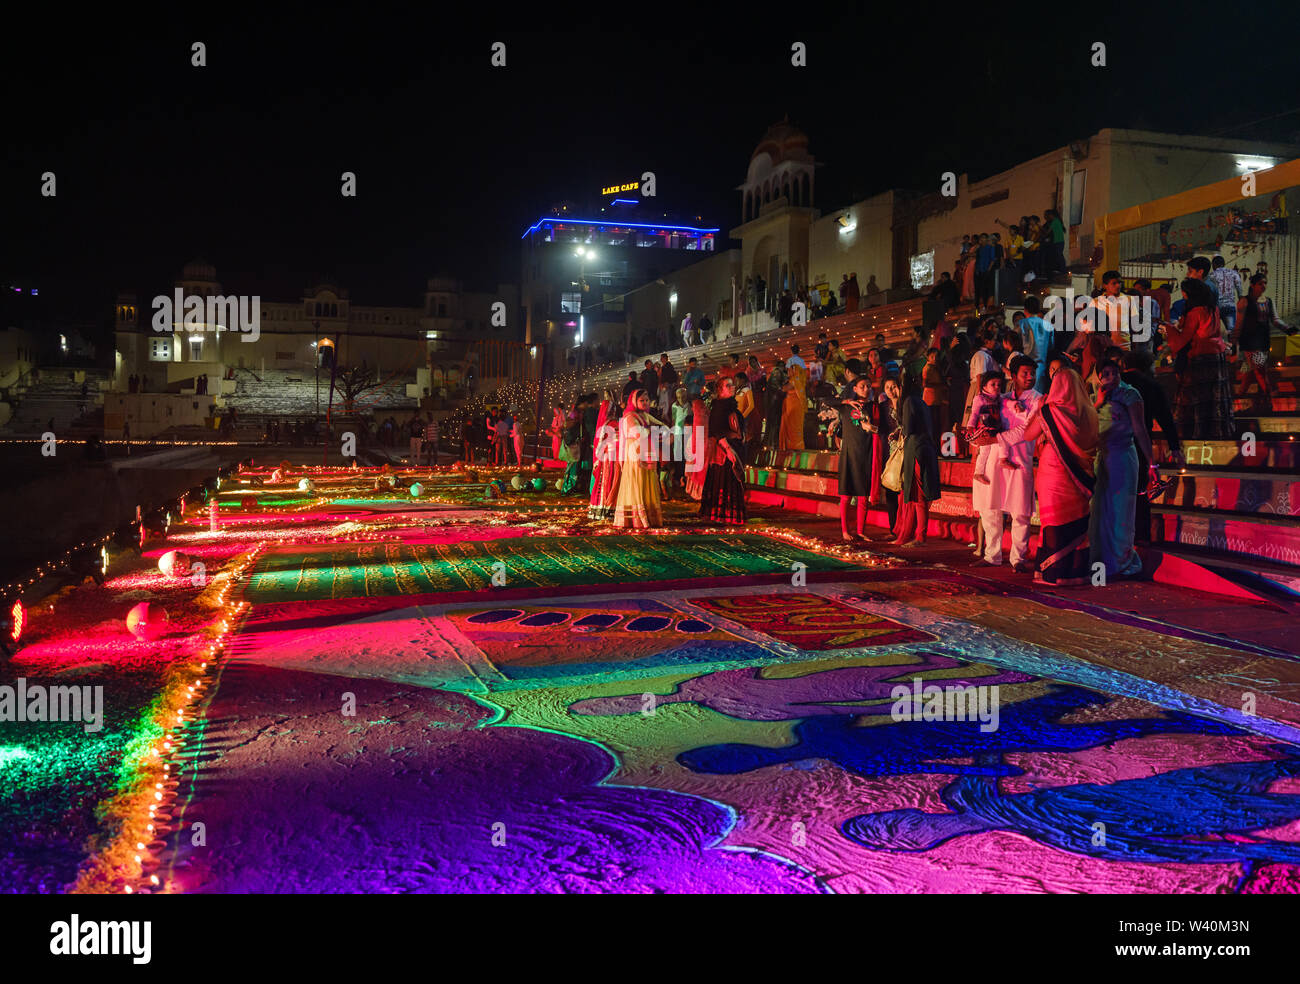 PUSHKAR, INDIA - CIRCA NOVEMBER 2018: Woman walking in the Pushkar Ghats during the opening ceremonies of the Camel Fair. It is one of the world's lar - Stock Image